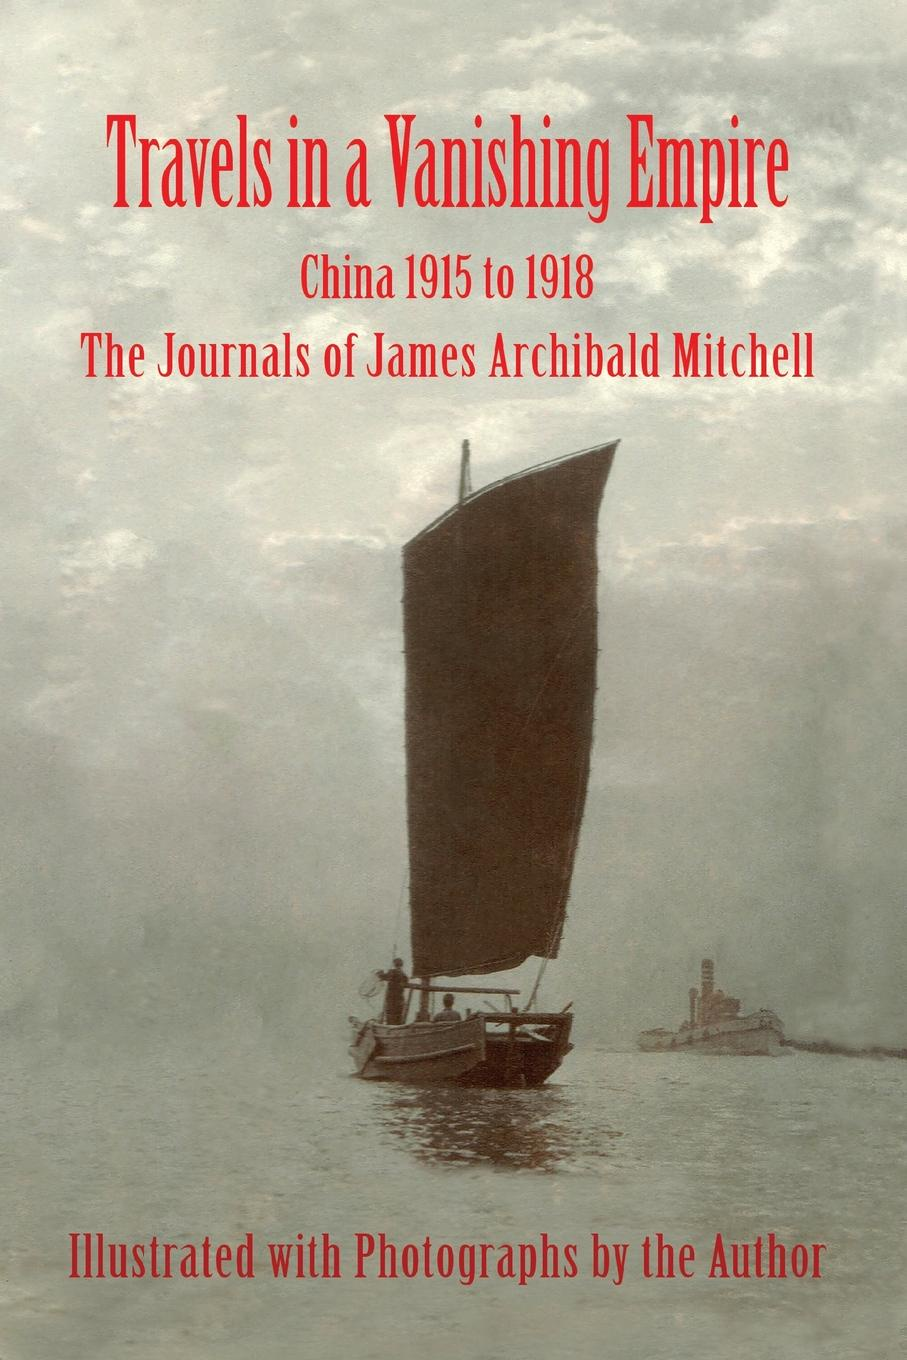 James A Mitchell Travels in a Vanishing Empire, China 1915 to 1918. The Journals of James Archibald Mitchell